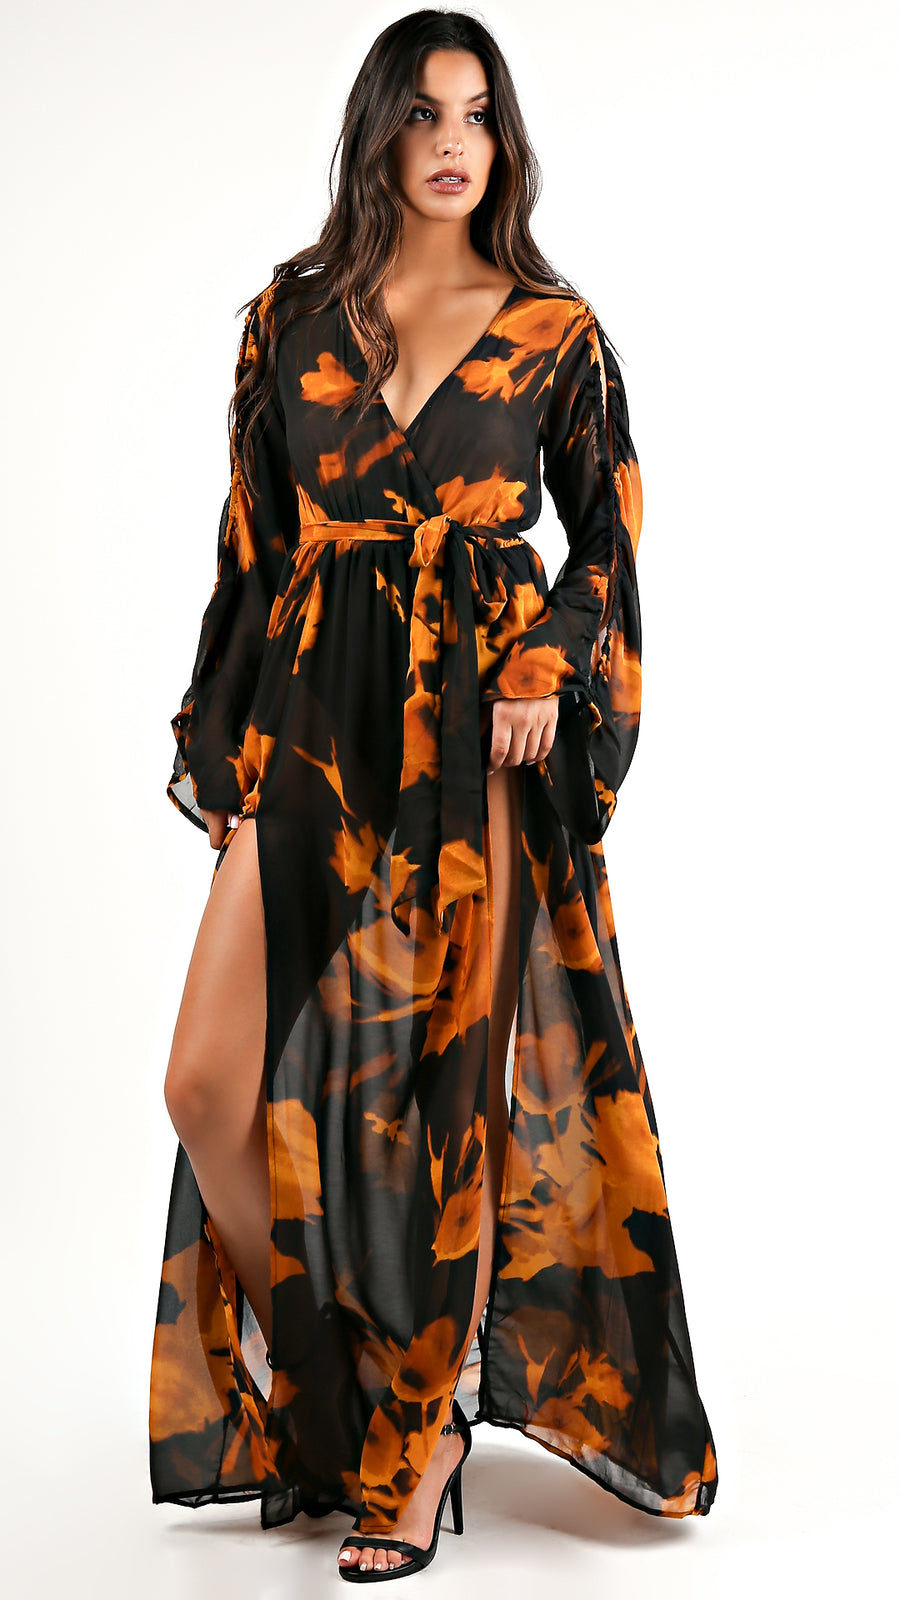 Golden Eye Floral Maxi Dress